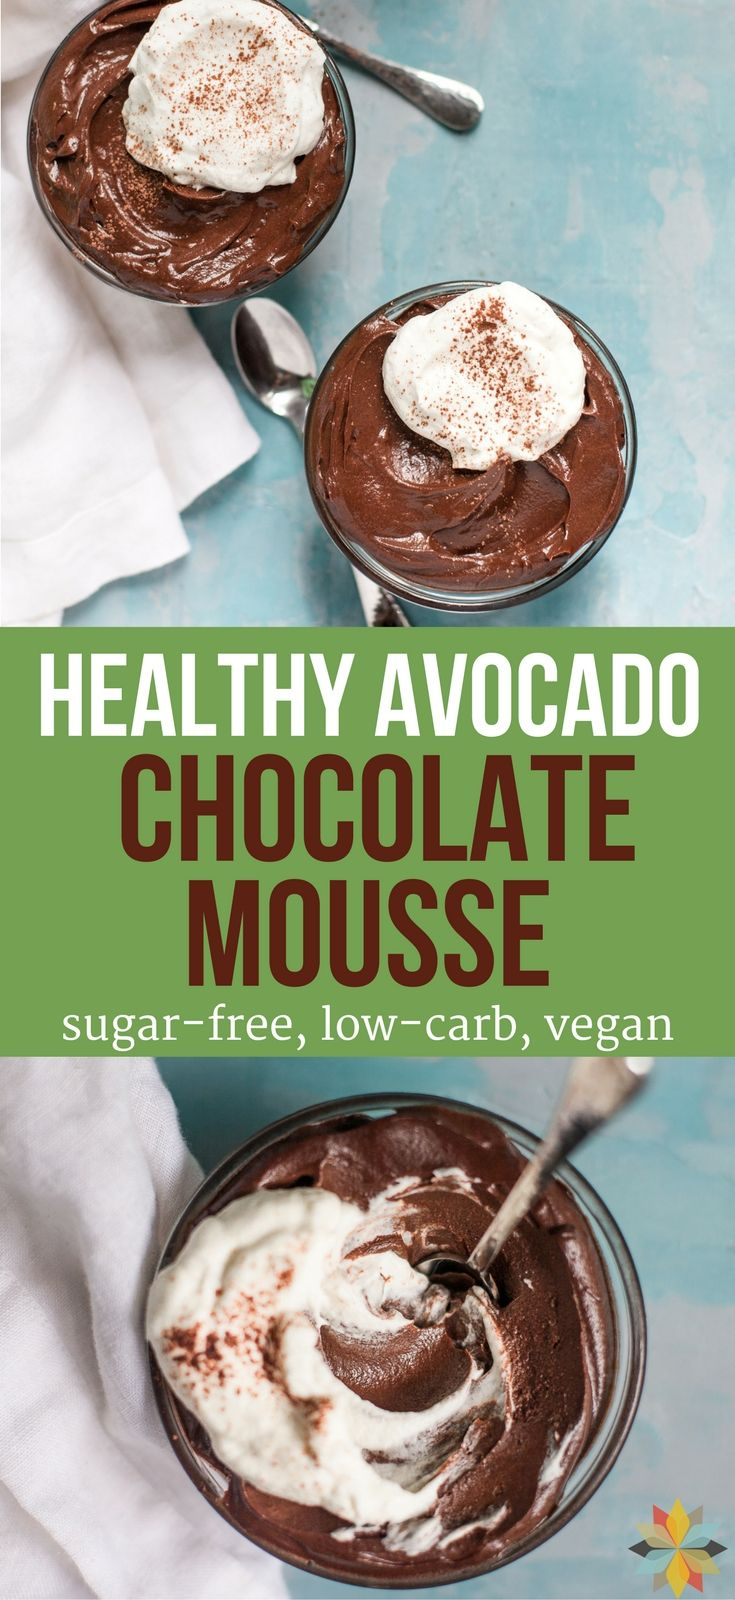 This Easy Healthy Chocolate Avocado Mousse or Chocolate Avocado Pudding is to die for! Unbelievable creaminess loaded with fiber and nutrients, plus it's low-carb, sugar-free & vegan!